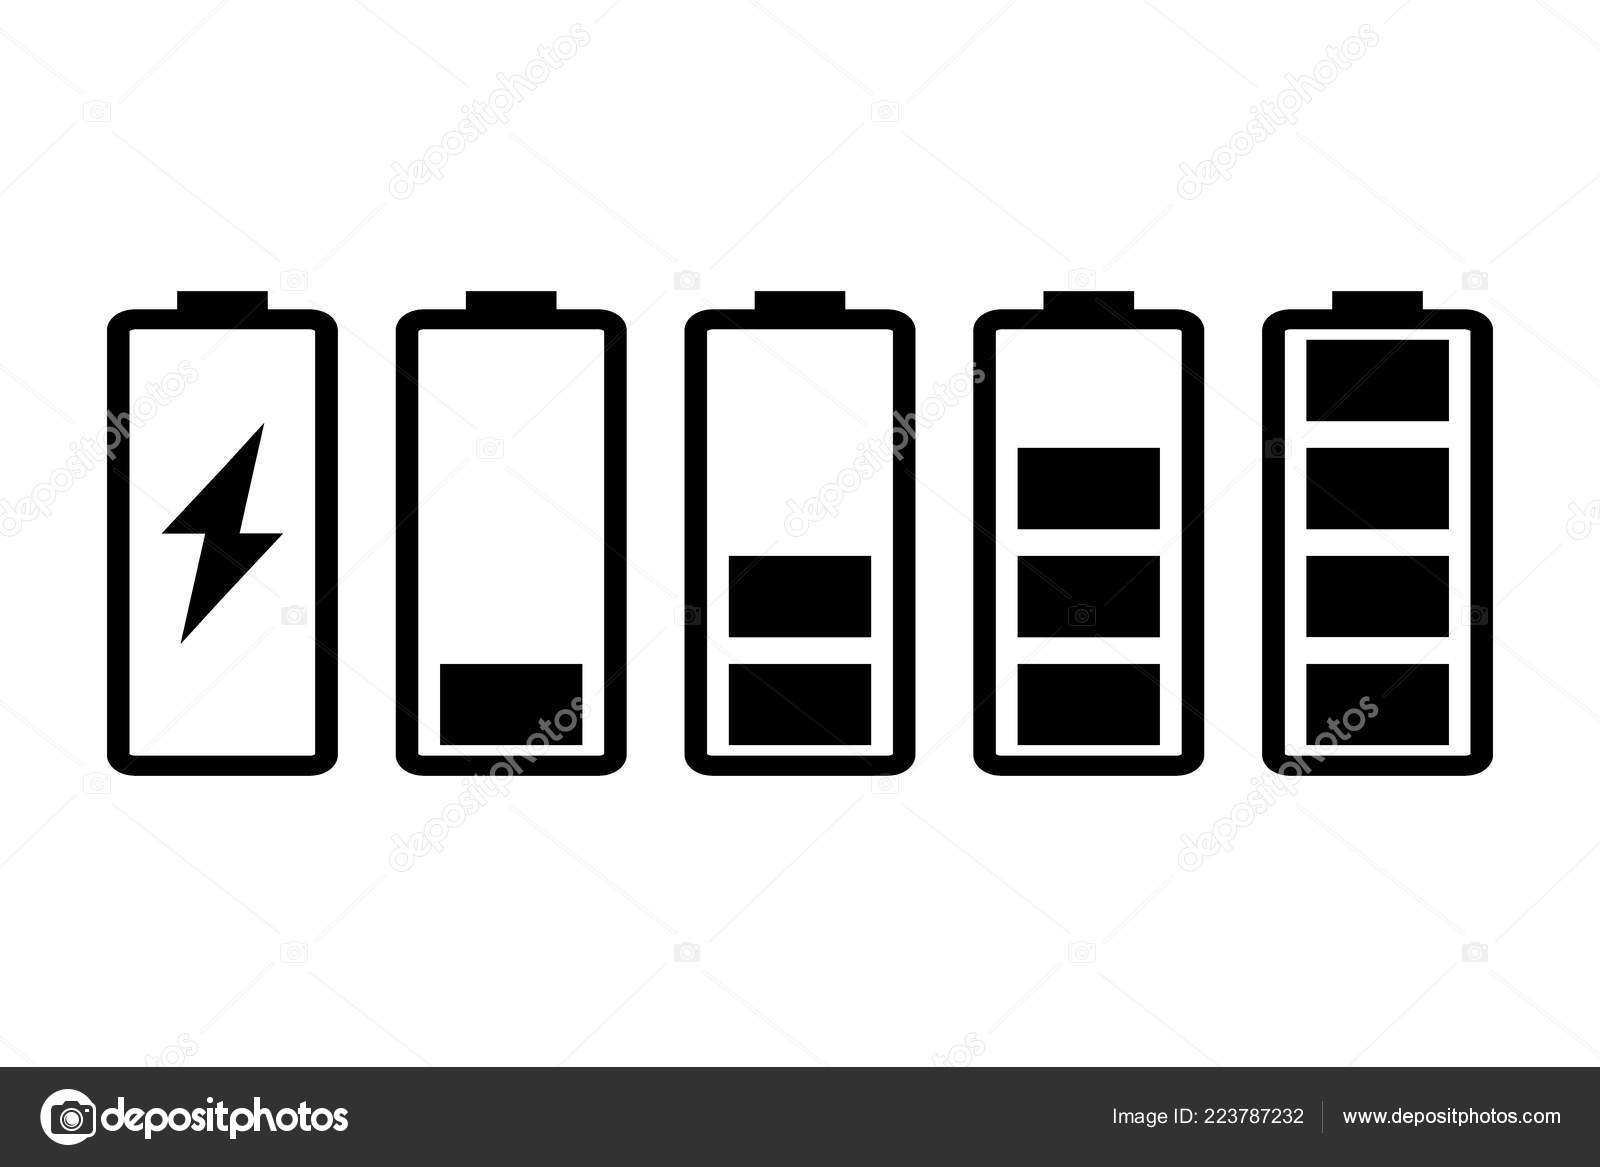 battery vector icon abstract stock vector c pupsy 223787232 https depositphotos com 223787232 stock illustration battery vector icon abstract html